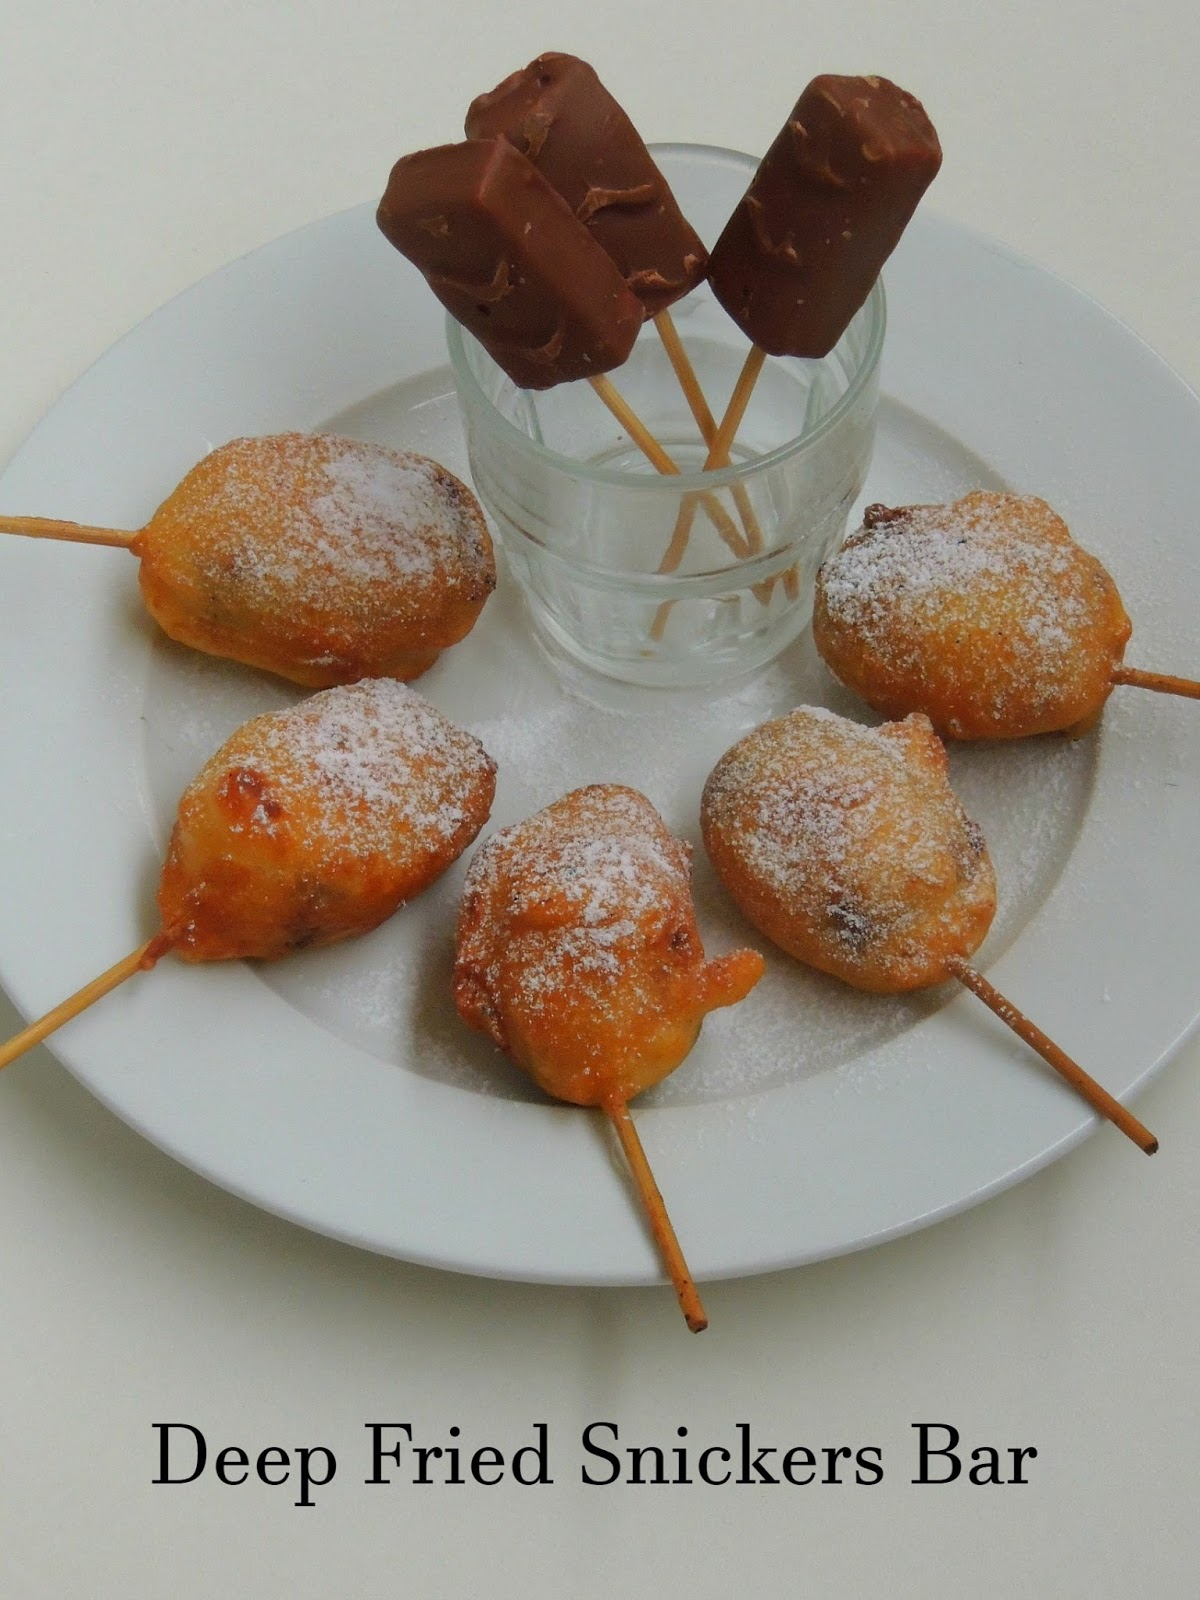 ... have posted during this whole year january deep fried snickers bars